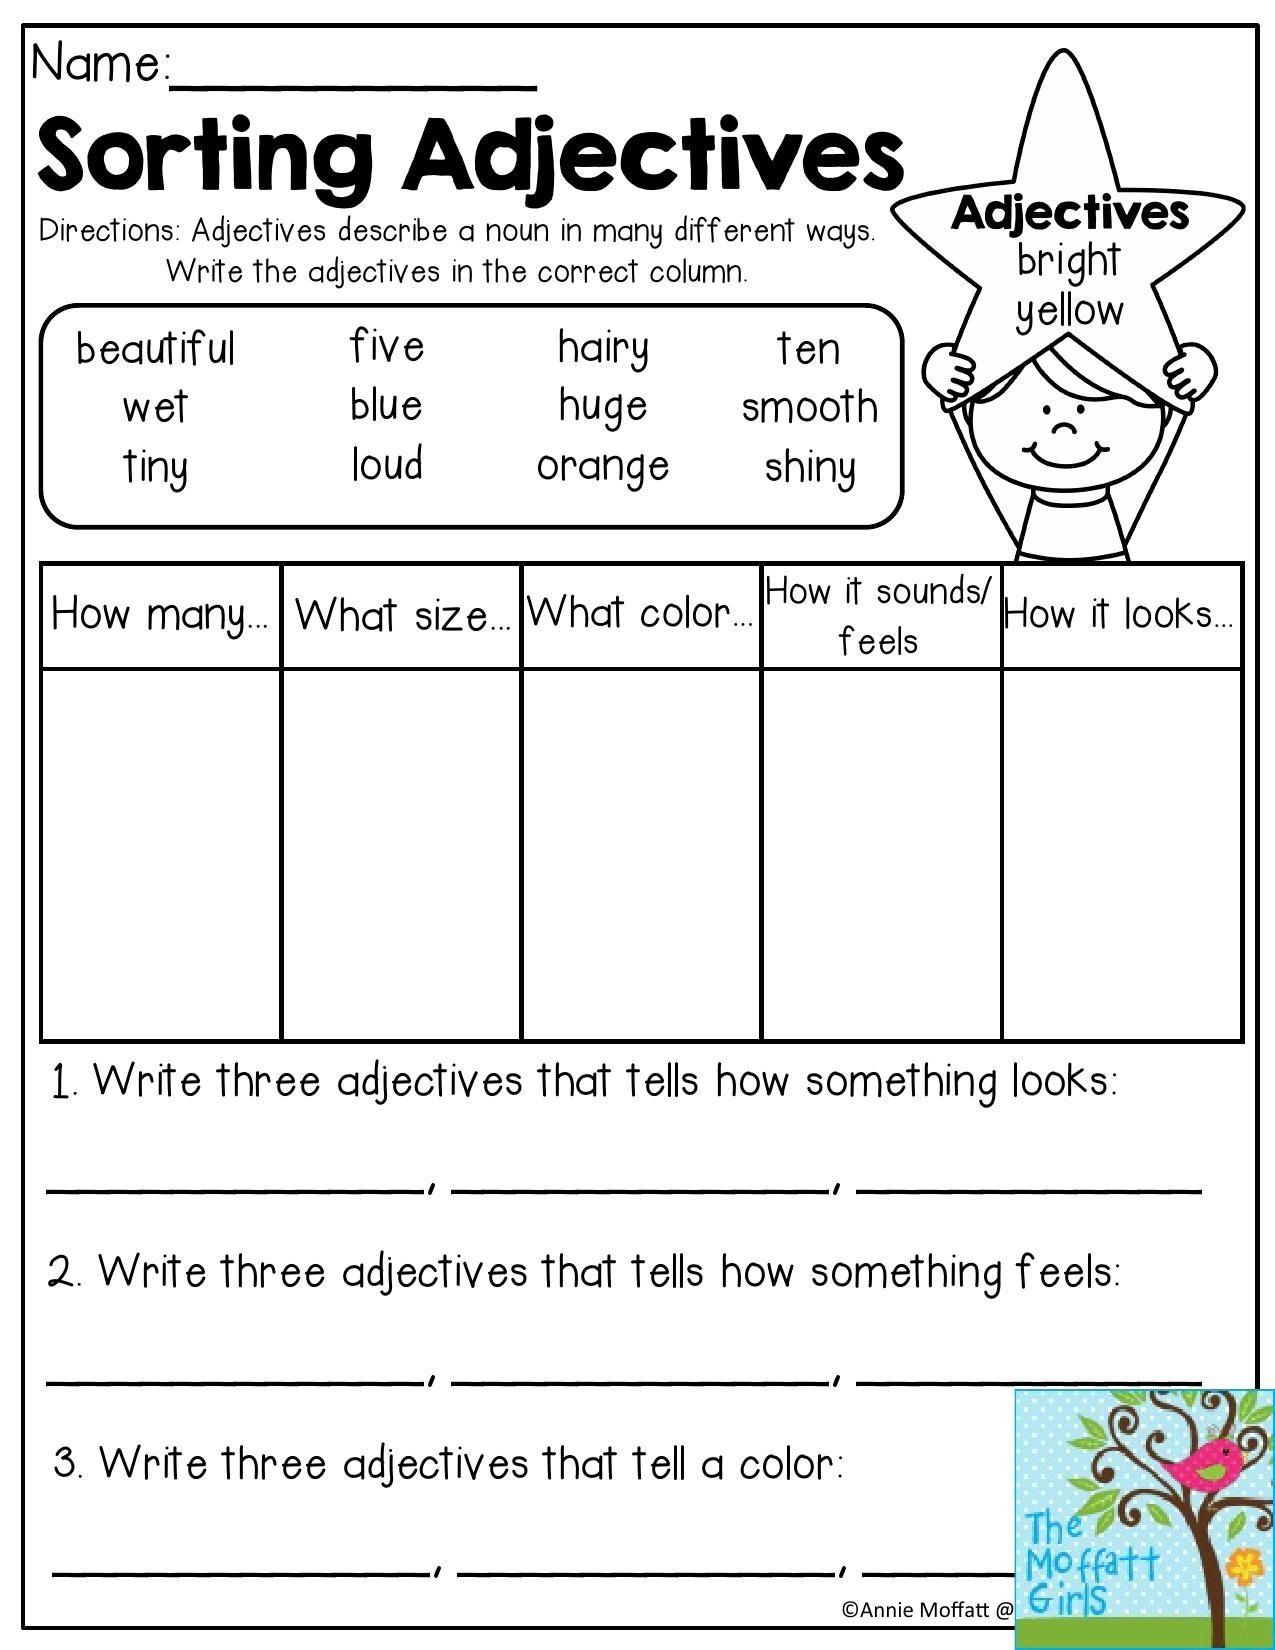 2nd Grade Grammer Worksheets Free Adjective Worksheet 2nd Grade In 2020 Good Grammar 2nd Grade Grammar Writing Lessons